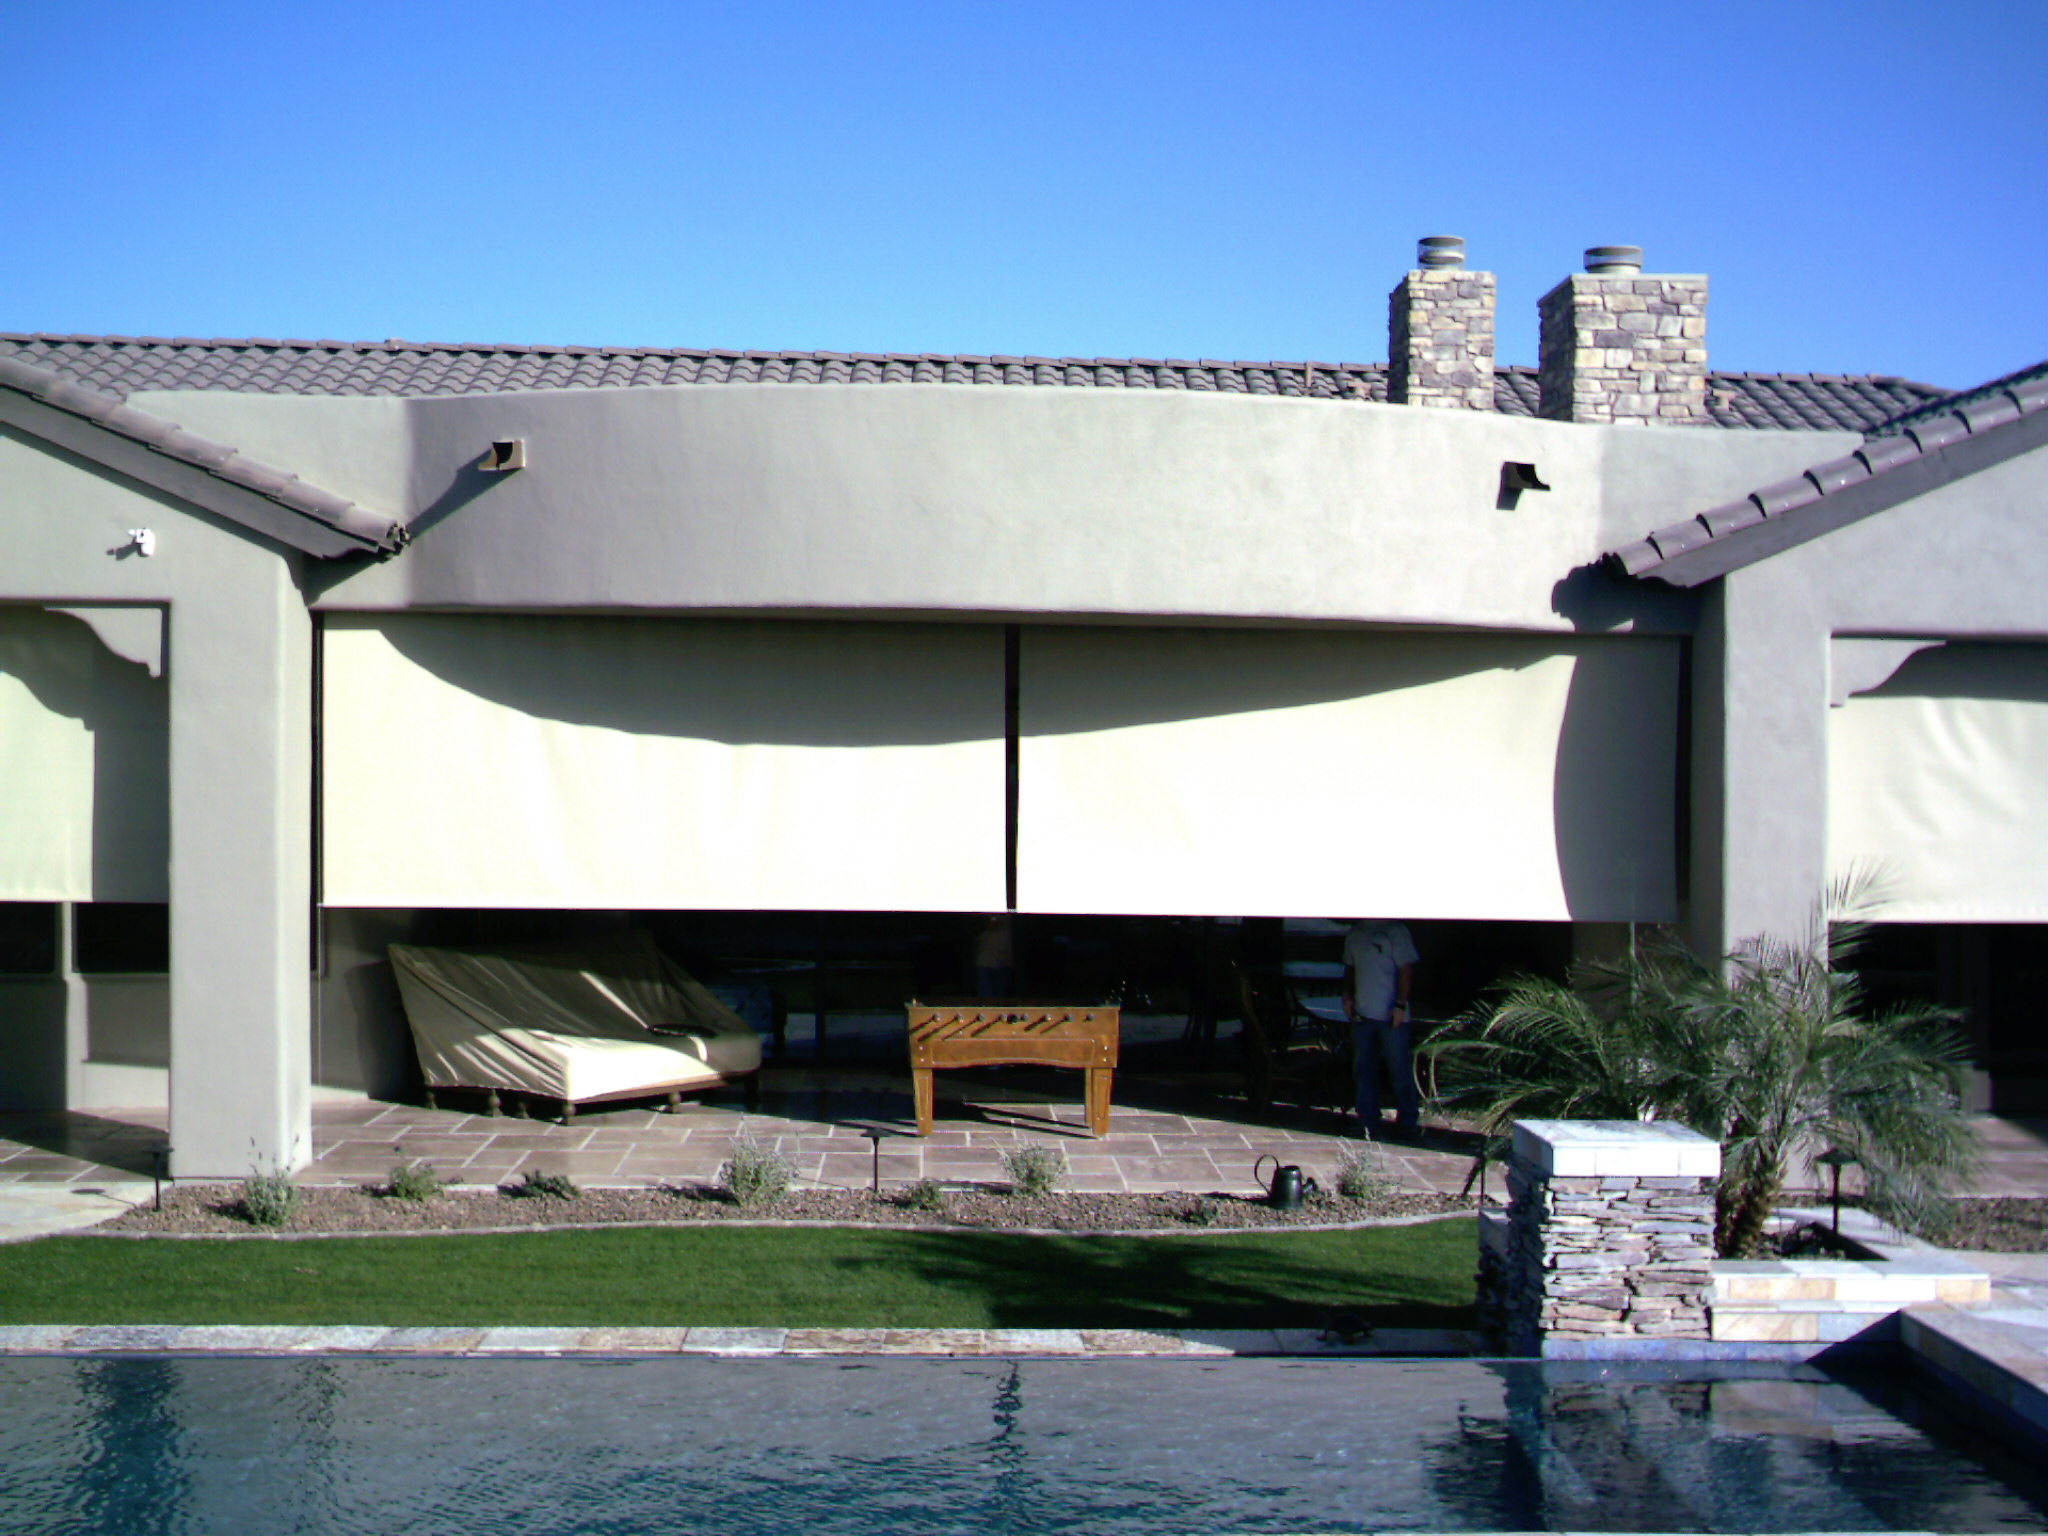 Exterior Shades provide security and privacy.